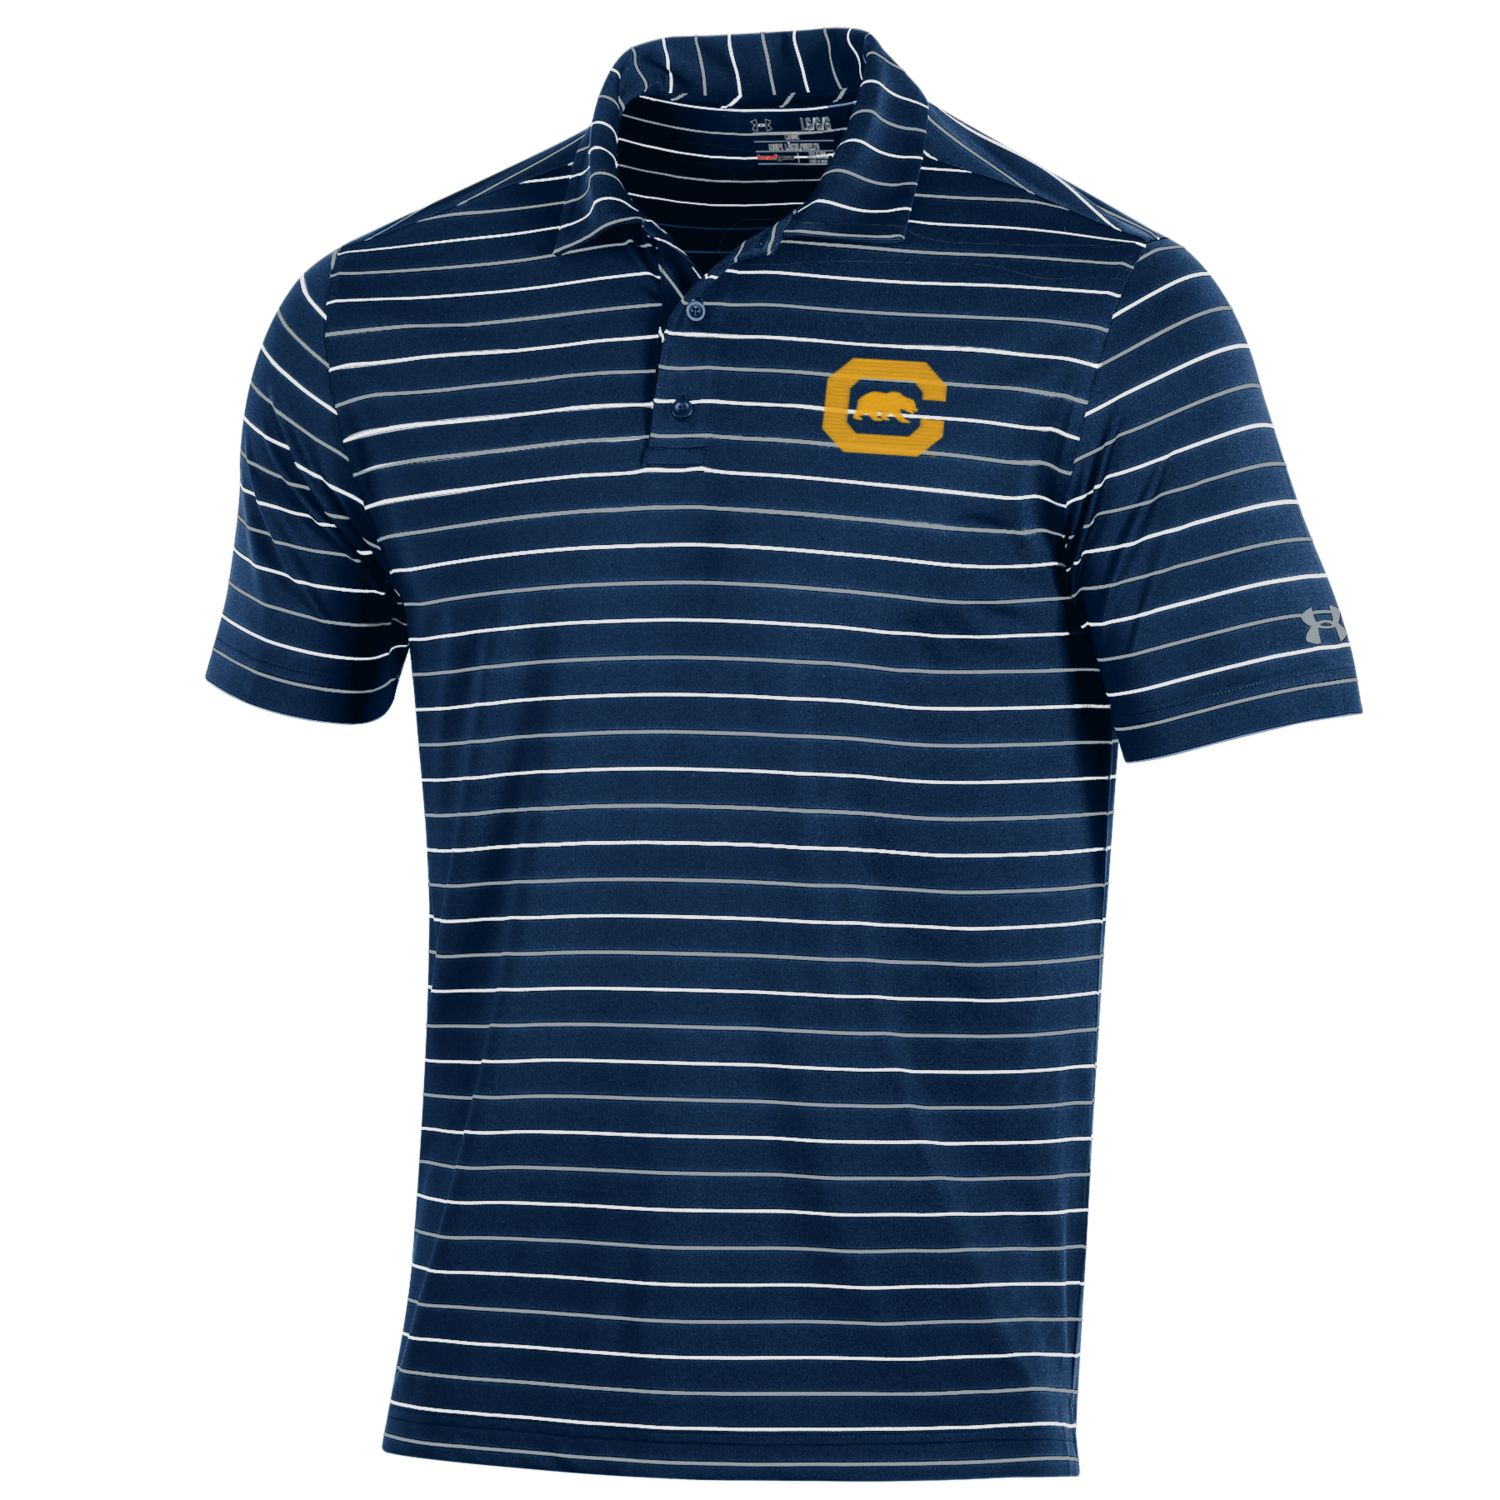 MD25-M Performance Stripe 2.0 Polo